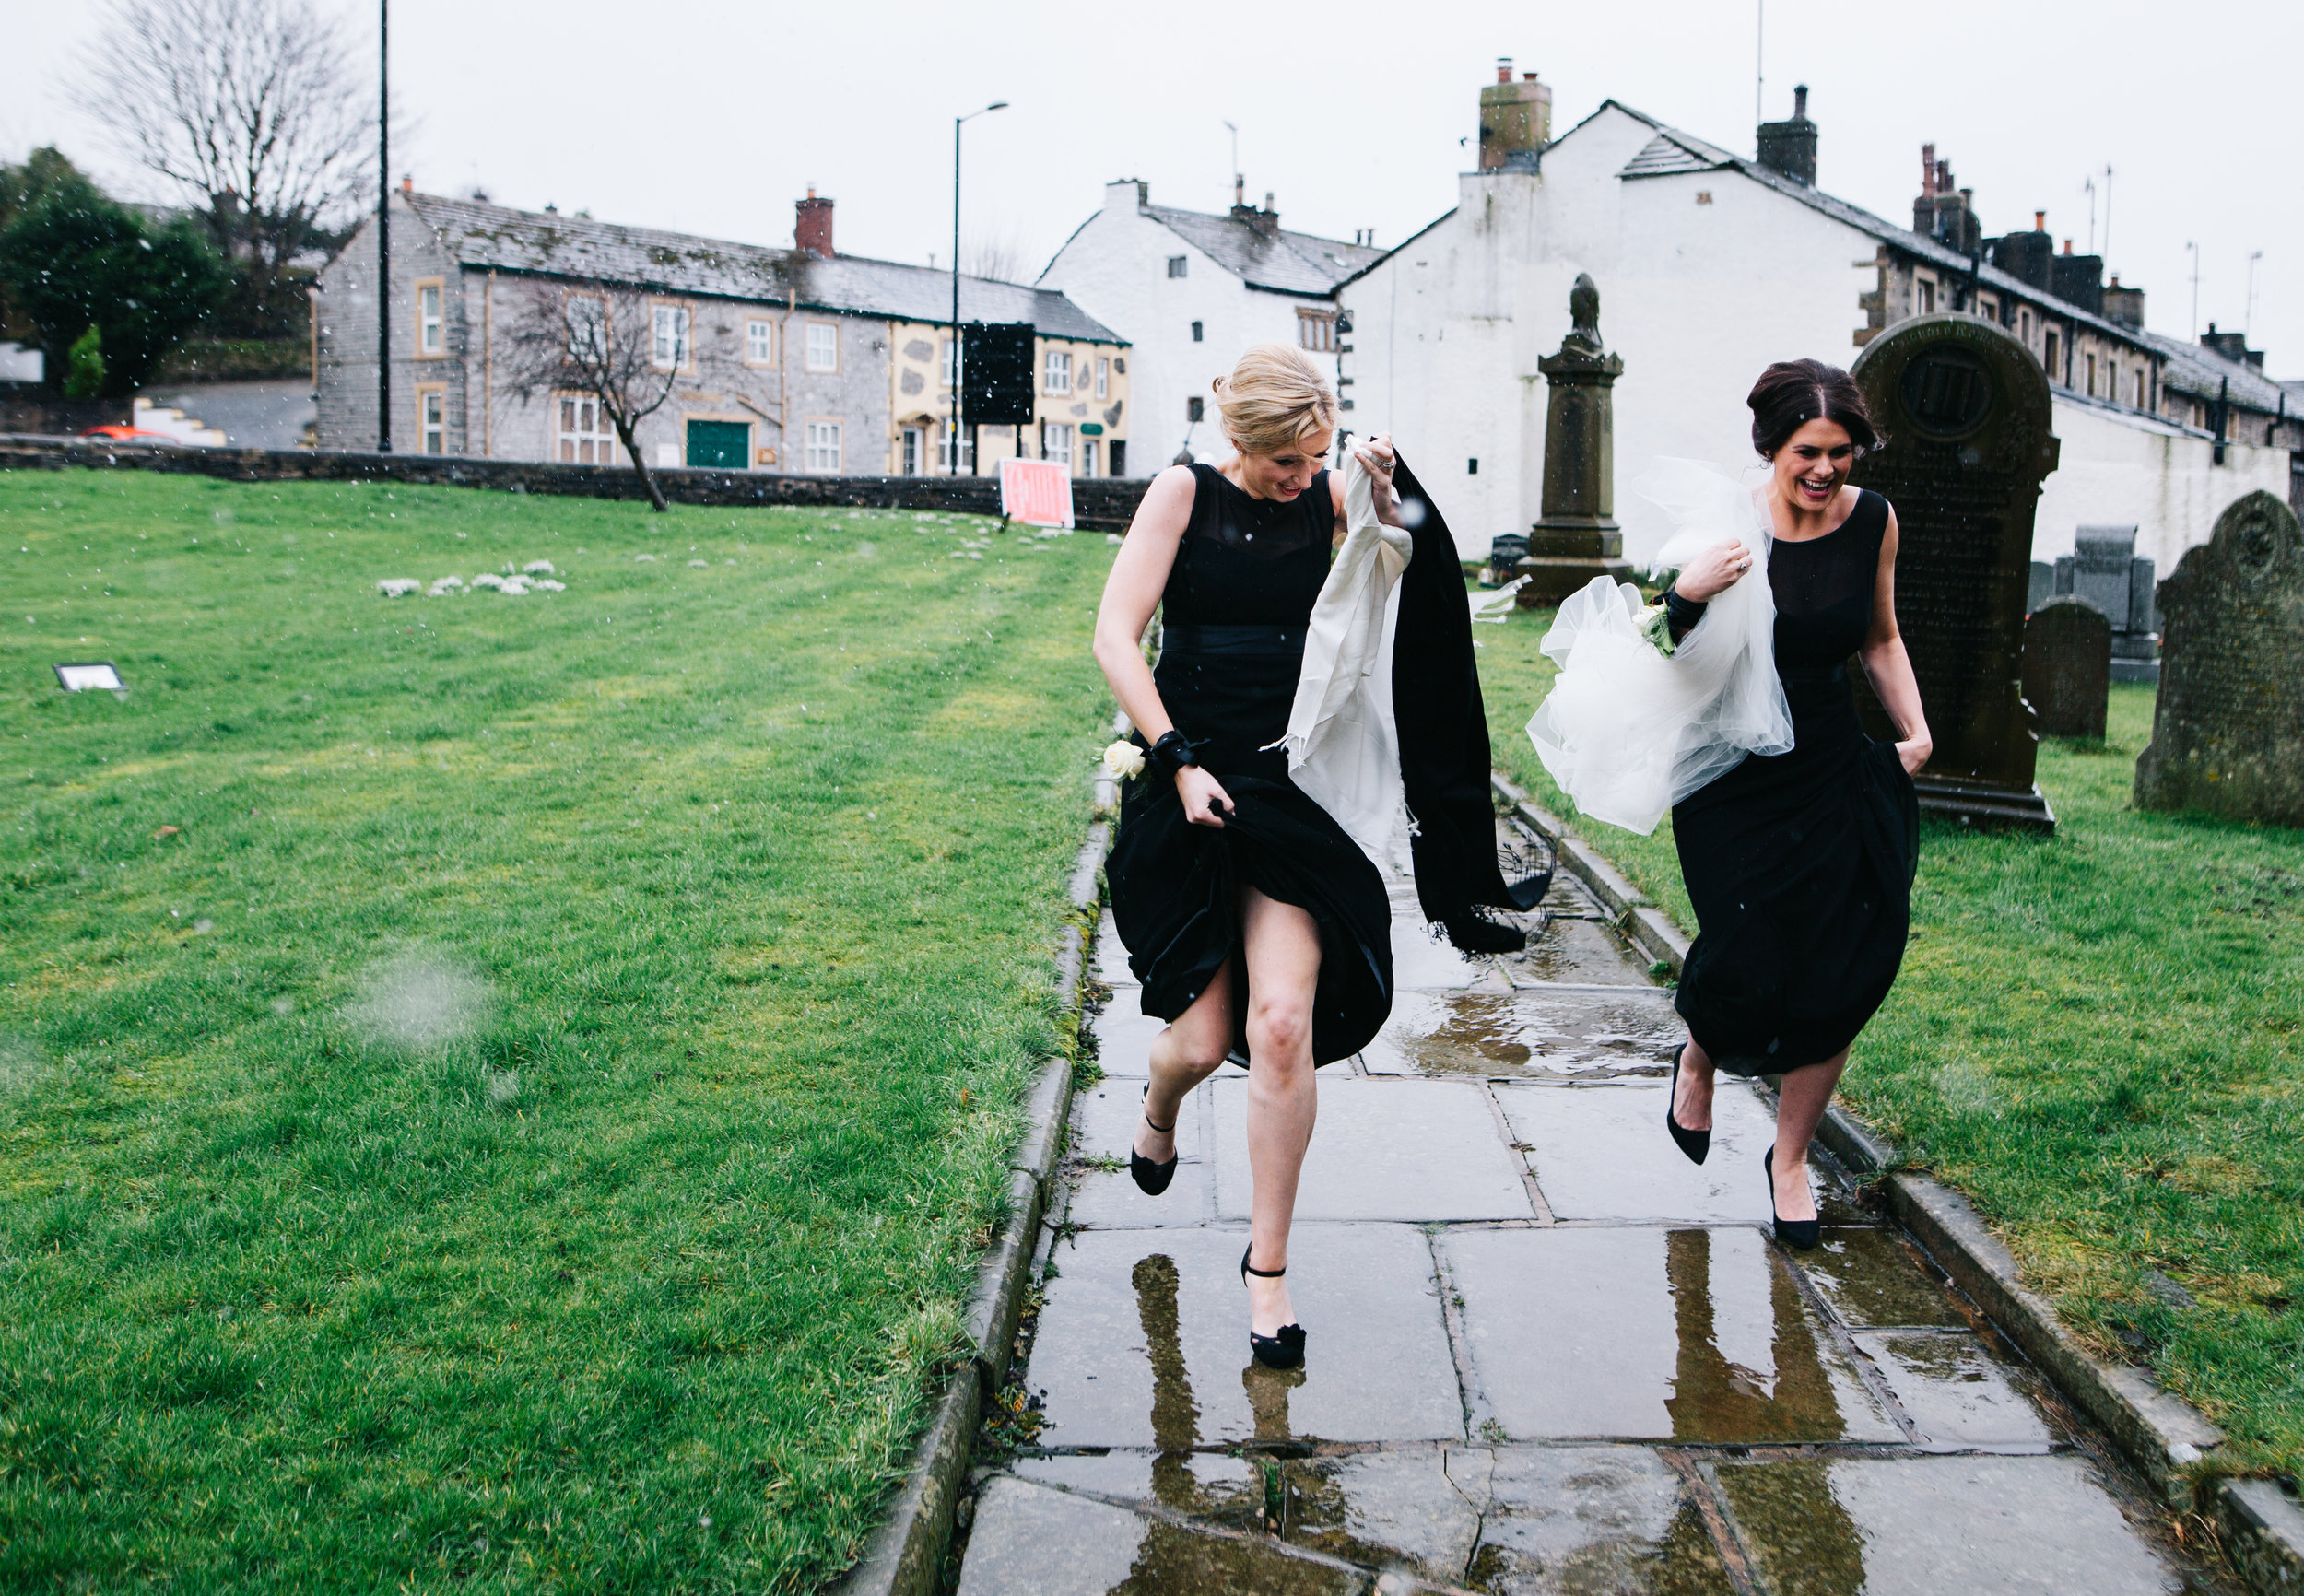 rainy day wedding - bridesmaids run to church